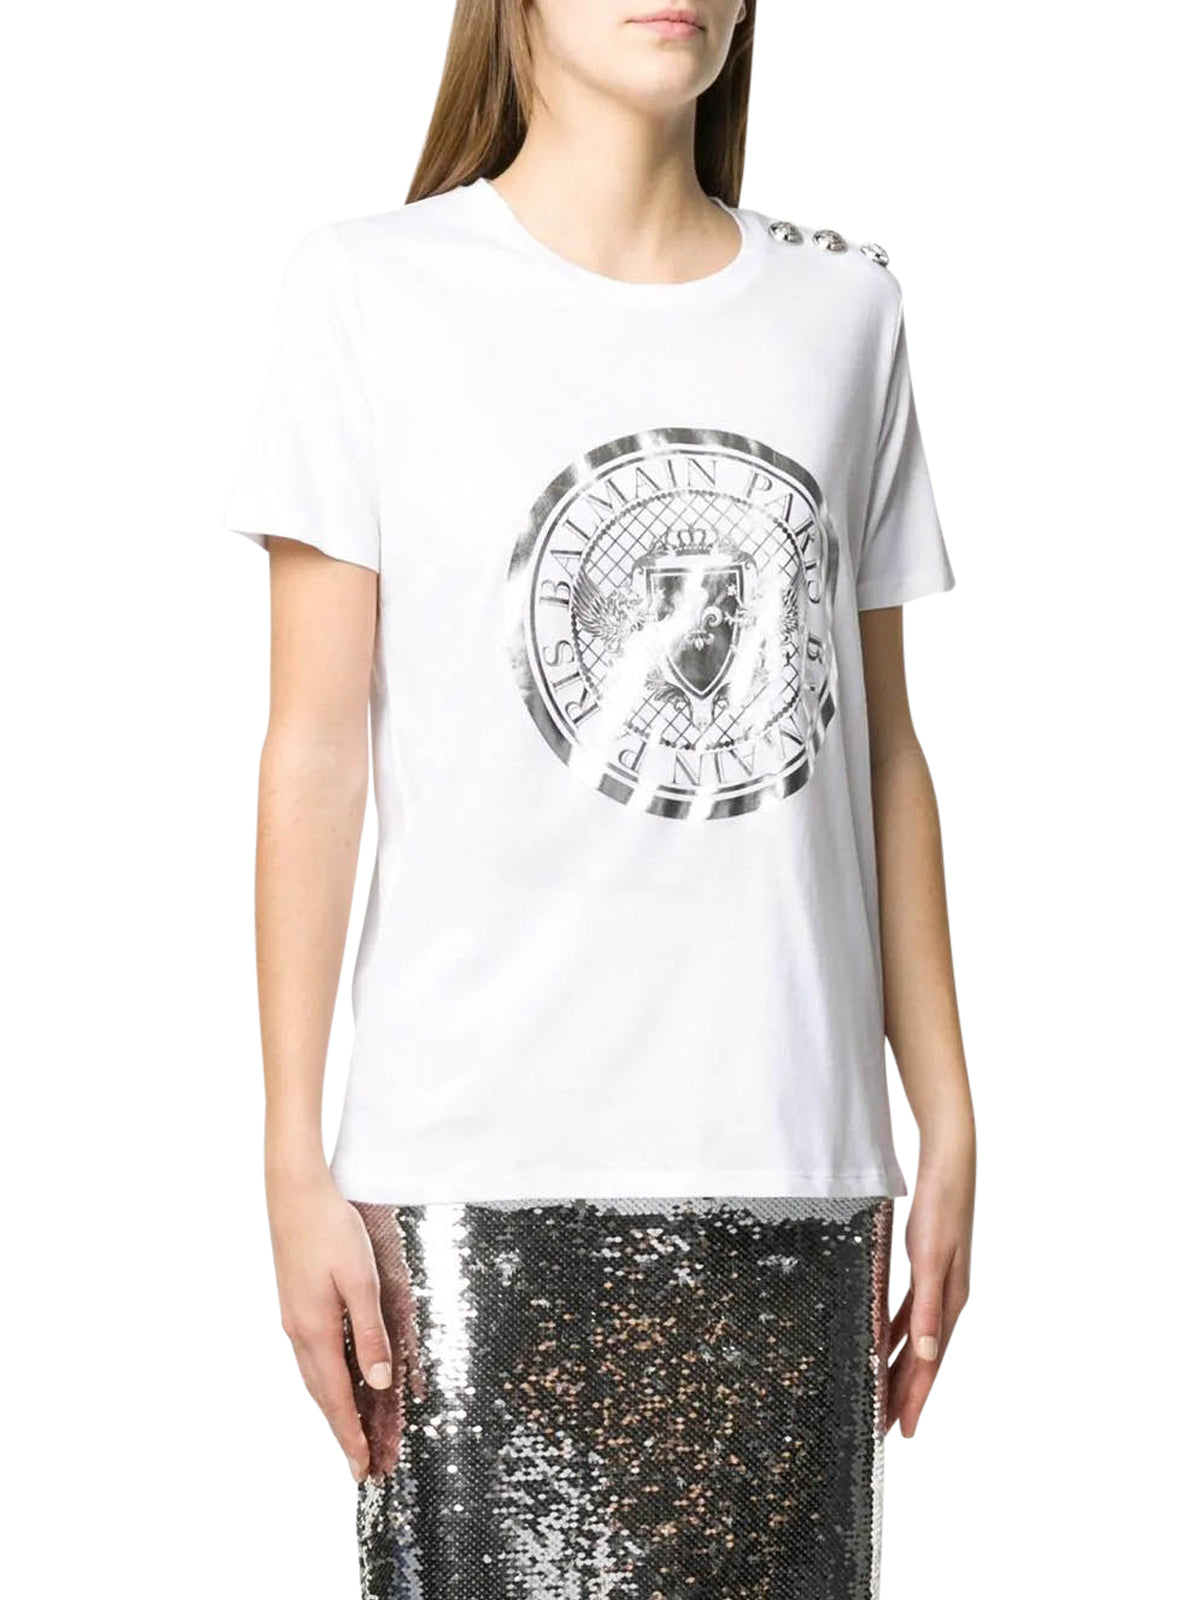 METALLIC PRINT TSHIRT AND SHOULDER BUTTONS